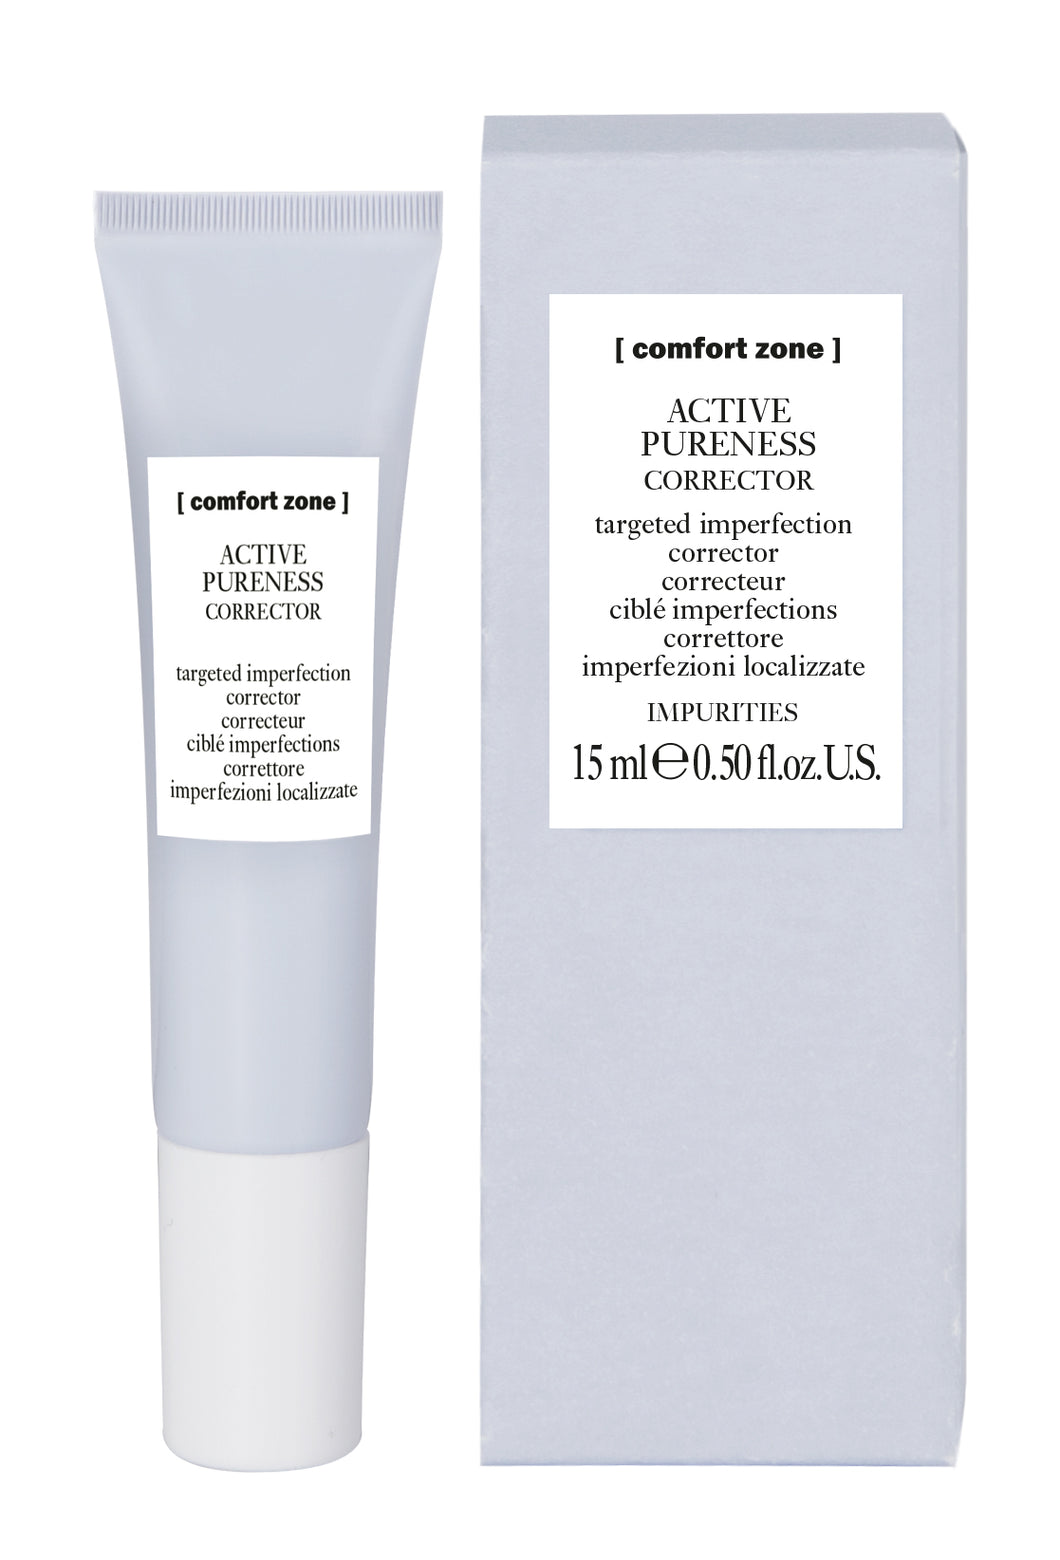 Comfort Zone Active Pureness Targeted Imperfection Corrector